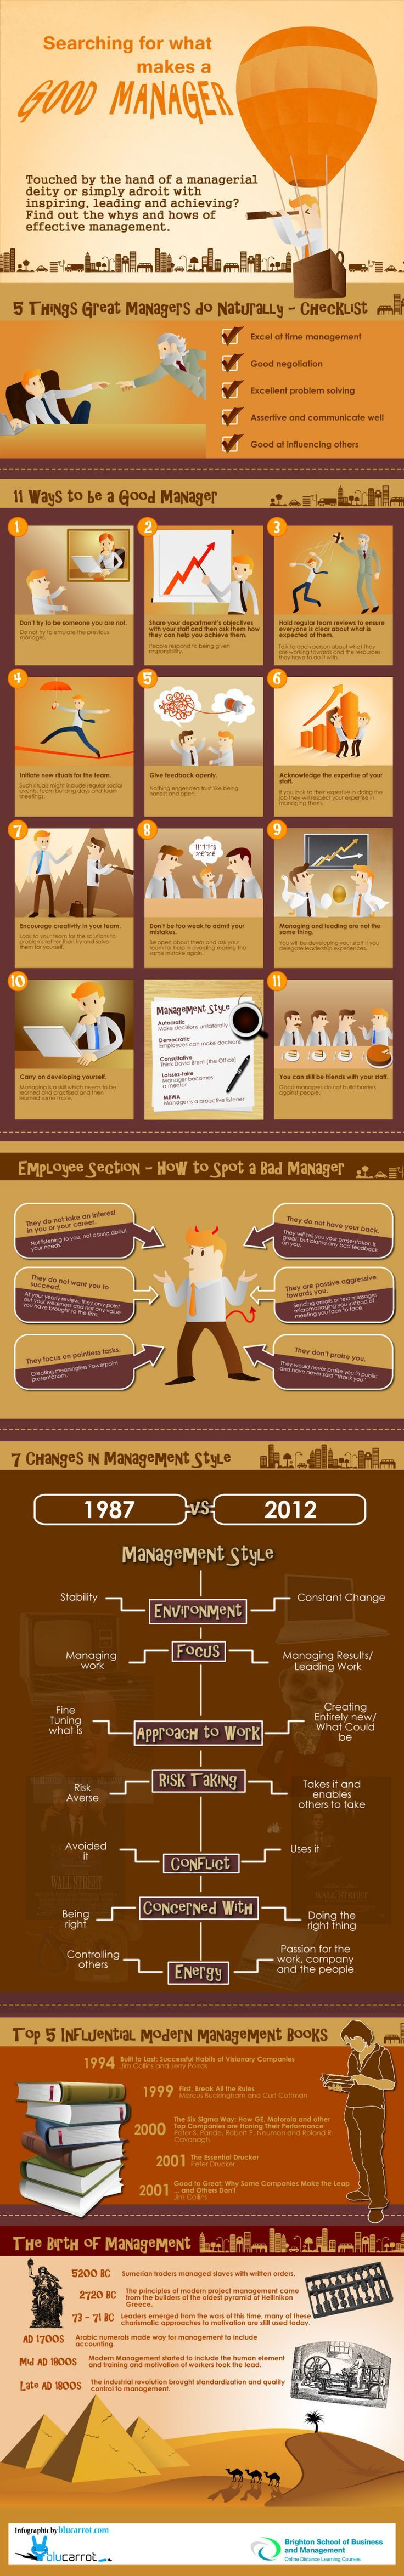 A great manager takes the skills and talents of their team to new heights when they apply effective leadership ability to the tasks at hand, day in and day out.If you've just stepped into a managerial position or have dreams of doing so in the future, this infographic from the Brighton School of Business